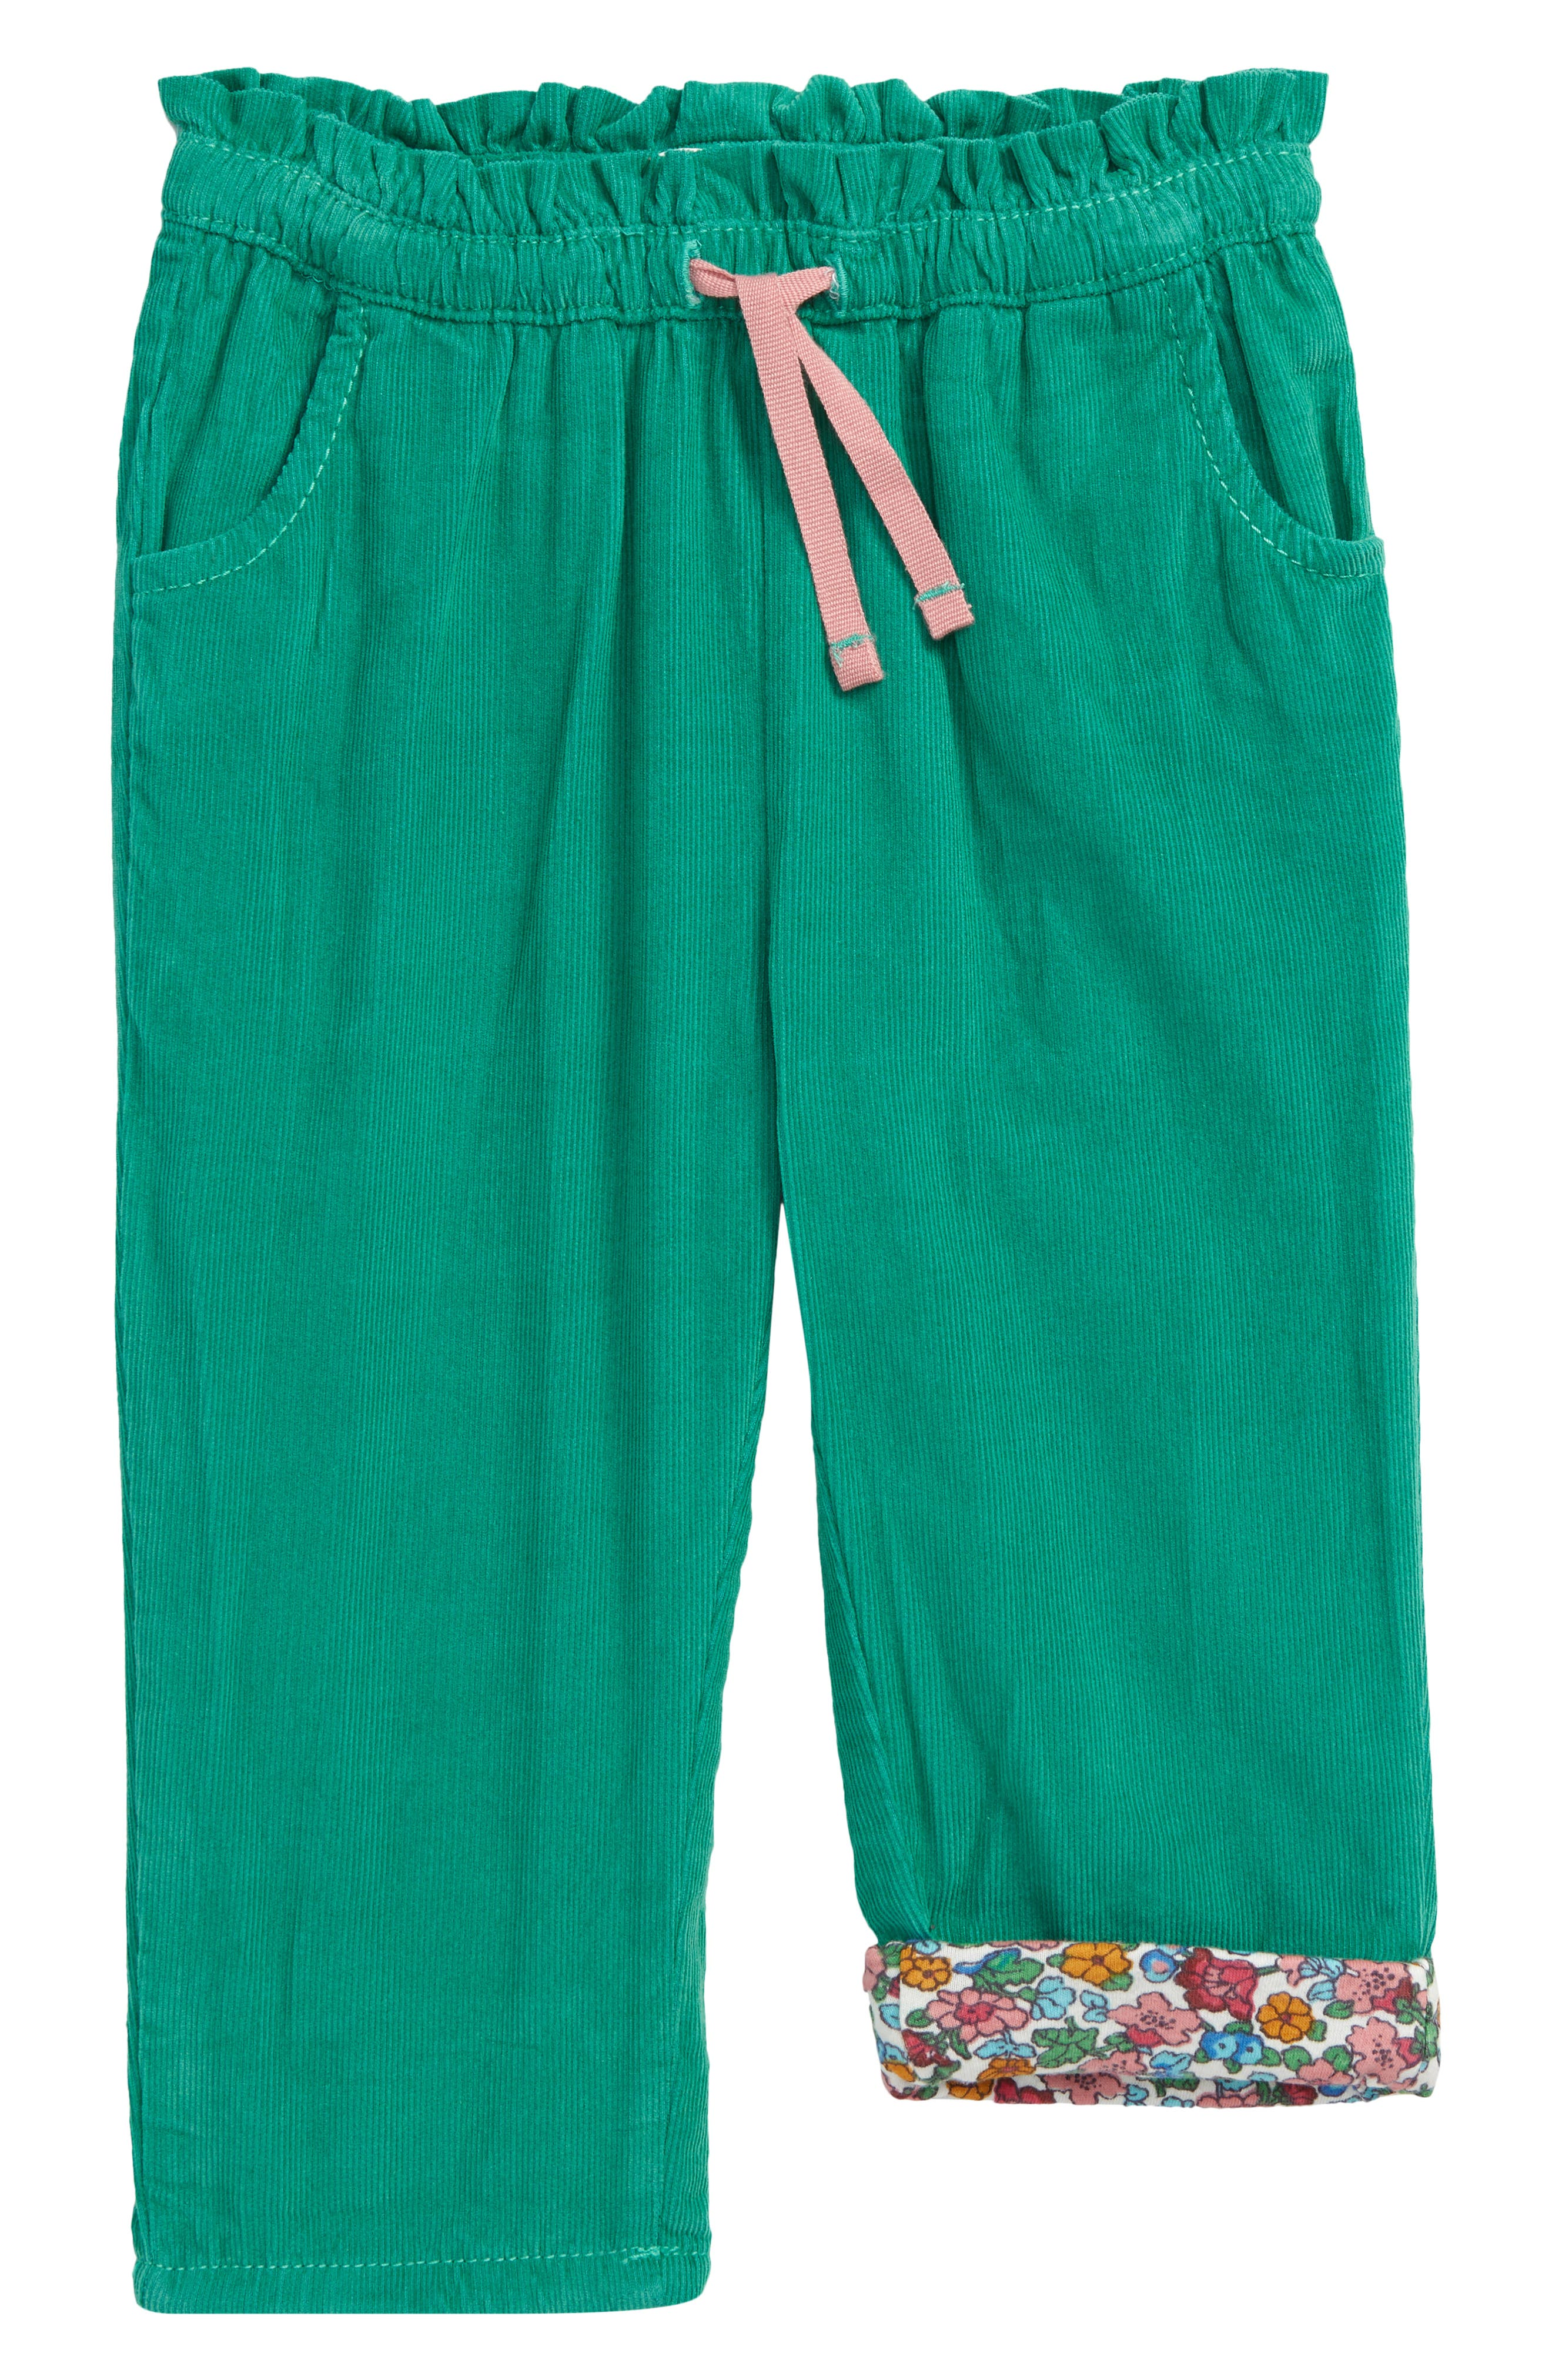 These simply irresistible corduroy pants feature a flowery back patch and a bloom-printed lining that adds sweet contrast when you roll up the hems. Style Name: Mini Boden Pull-On Corduroy Pants (Baby). Style Number: 6099279. Available in stores.